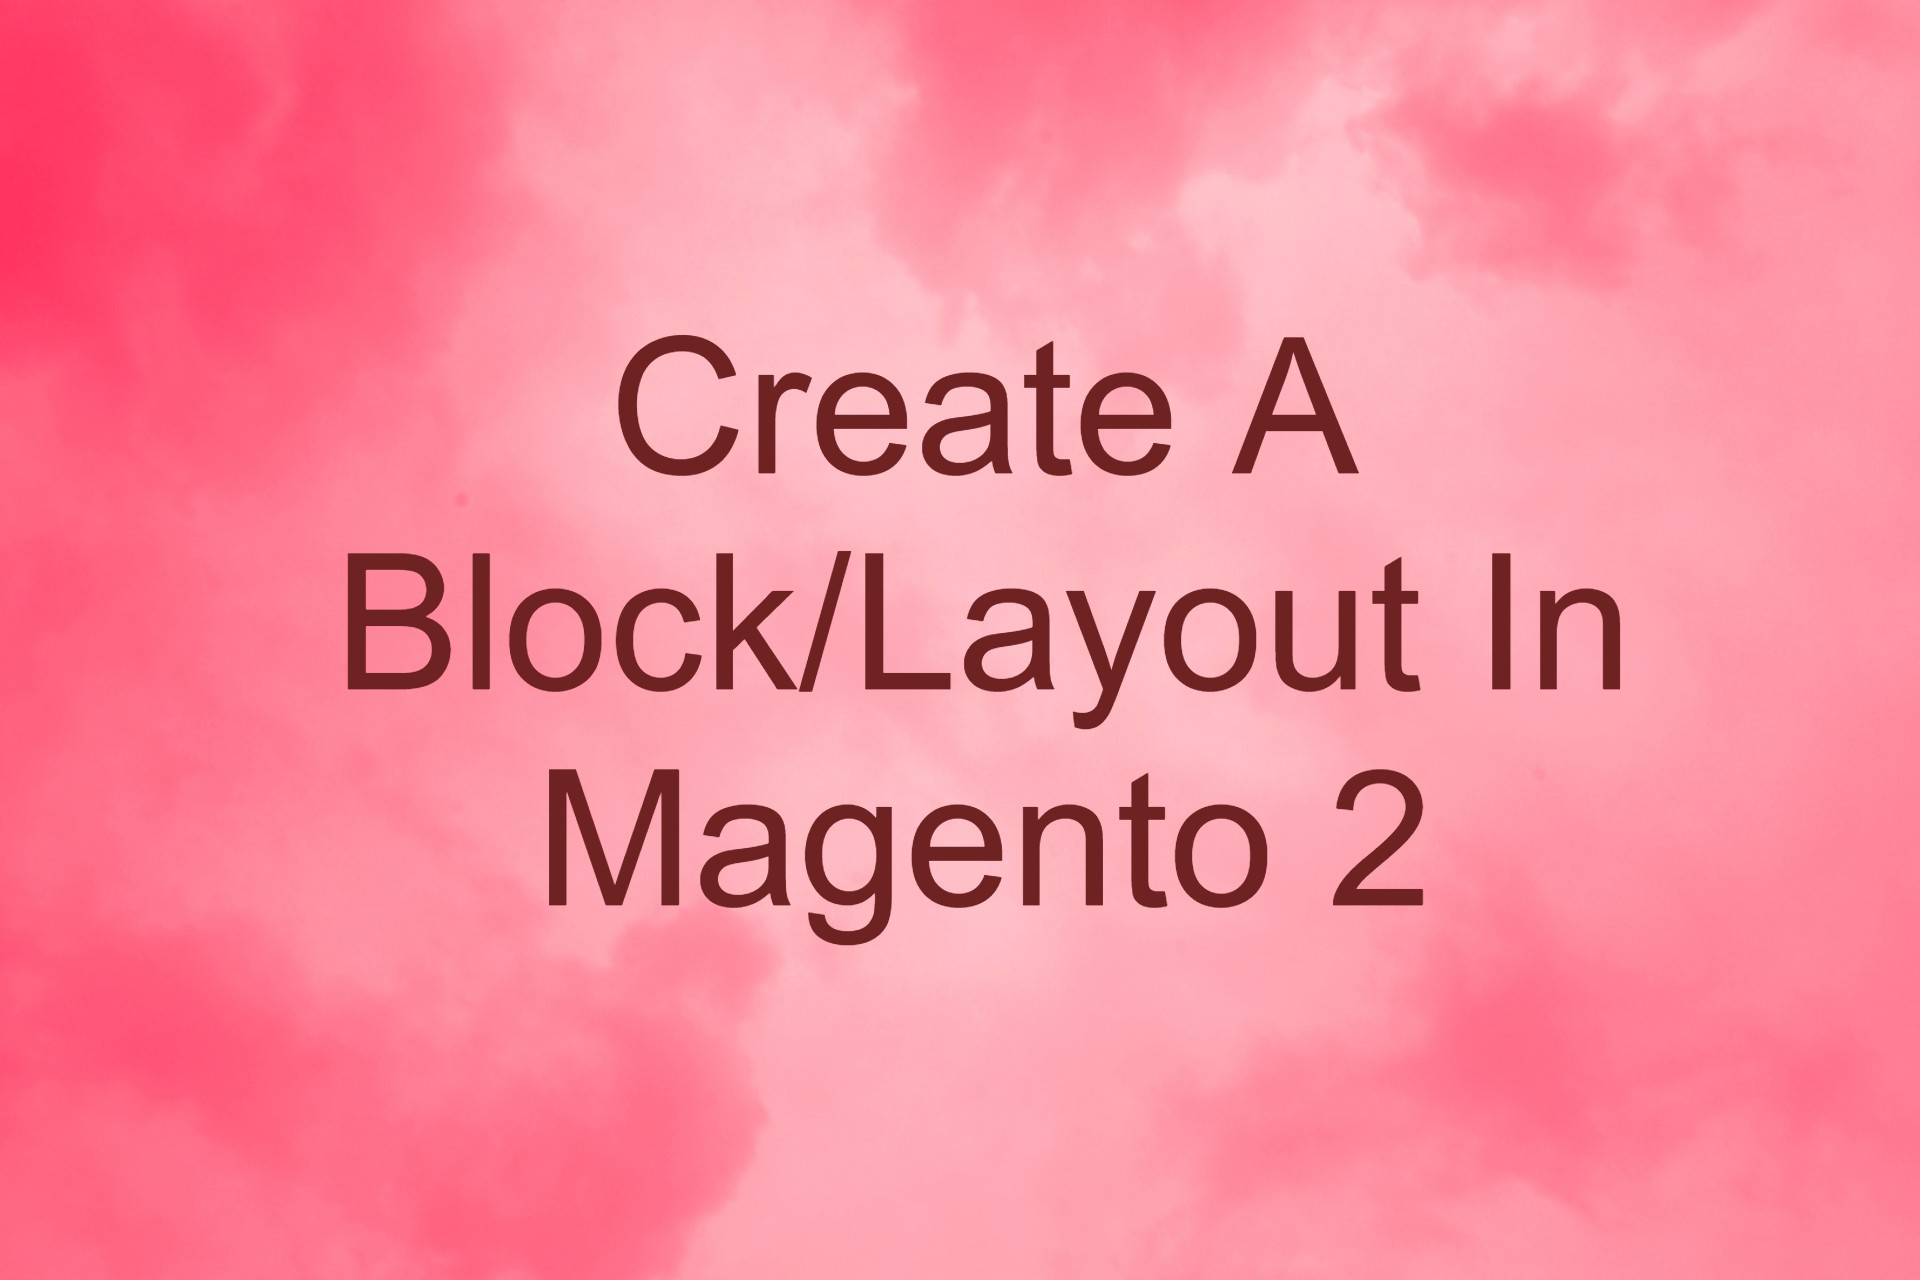 Create a block/layout in Magento 2